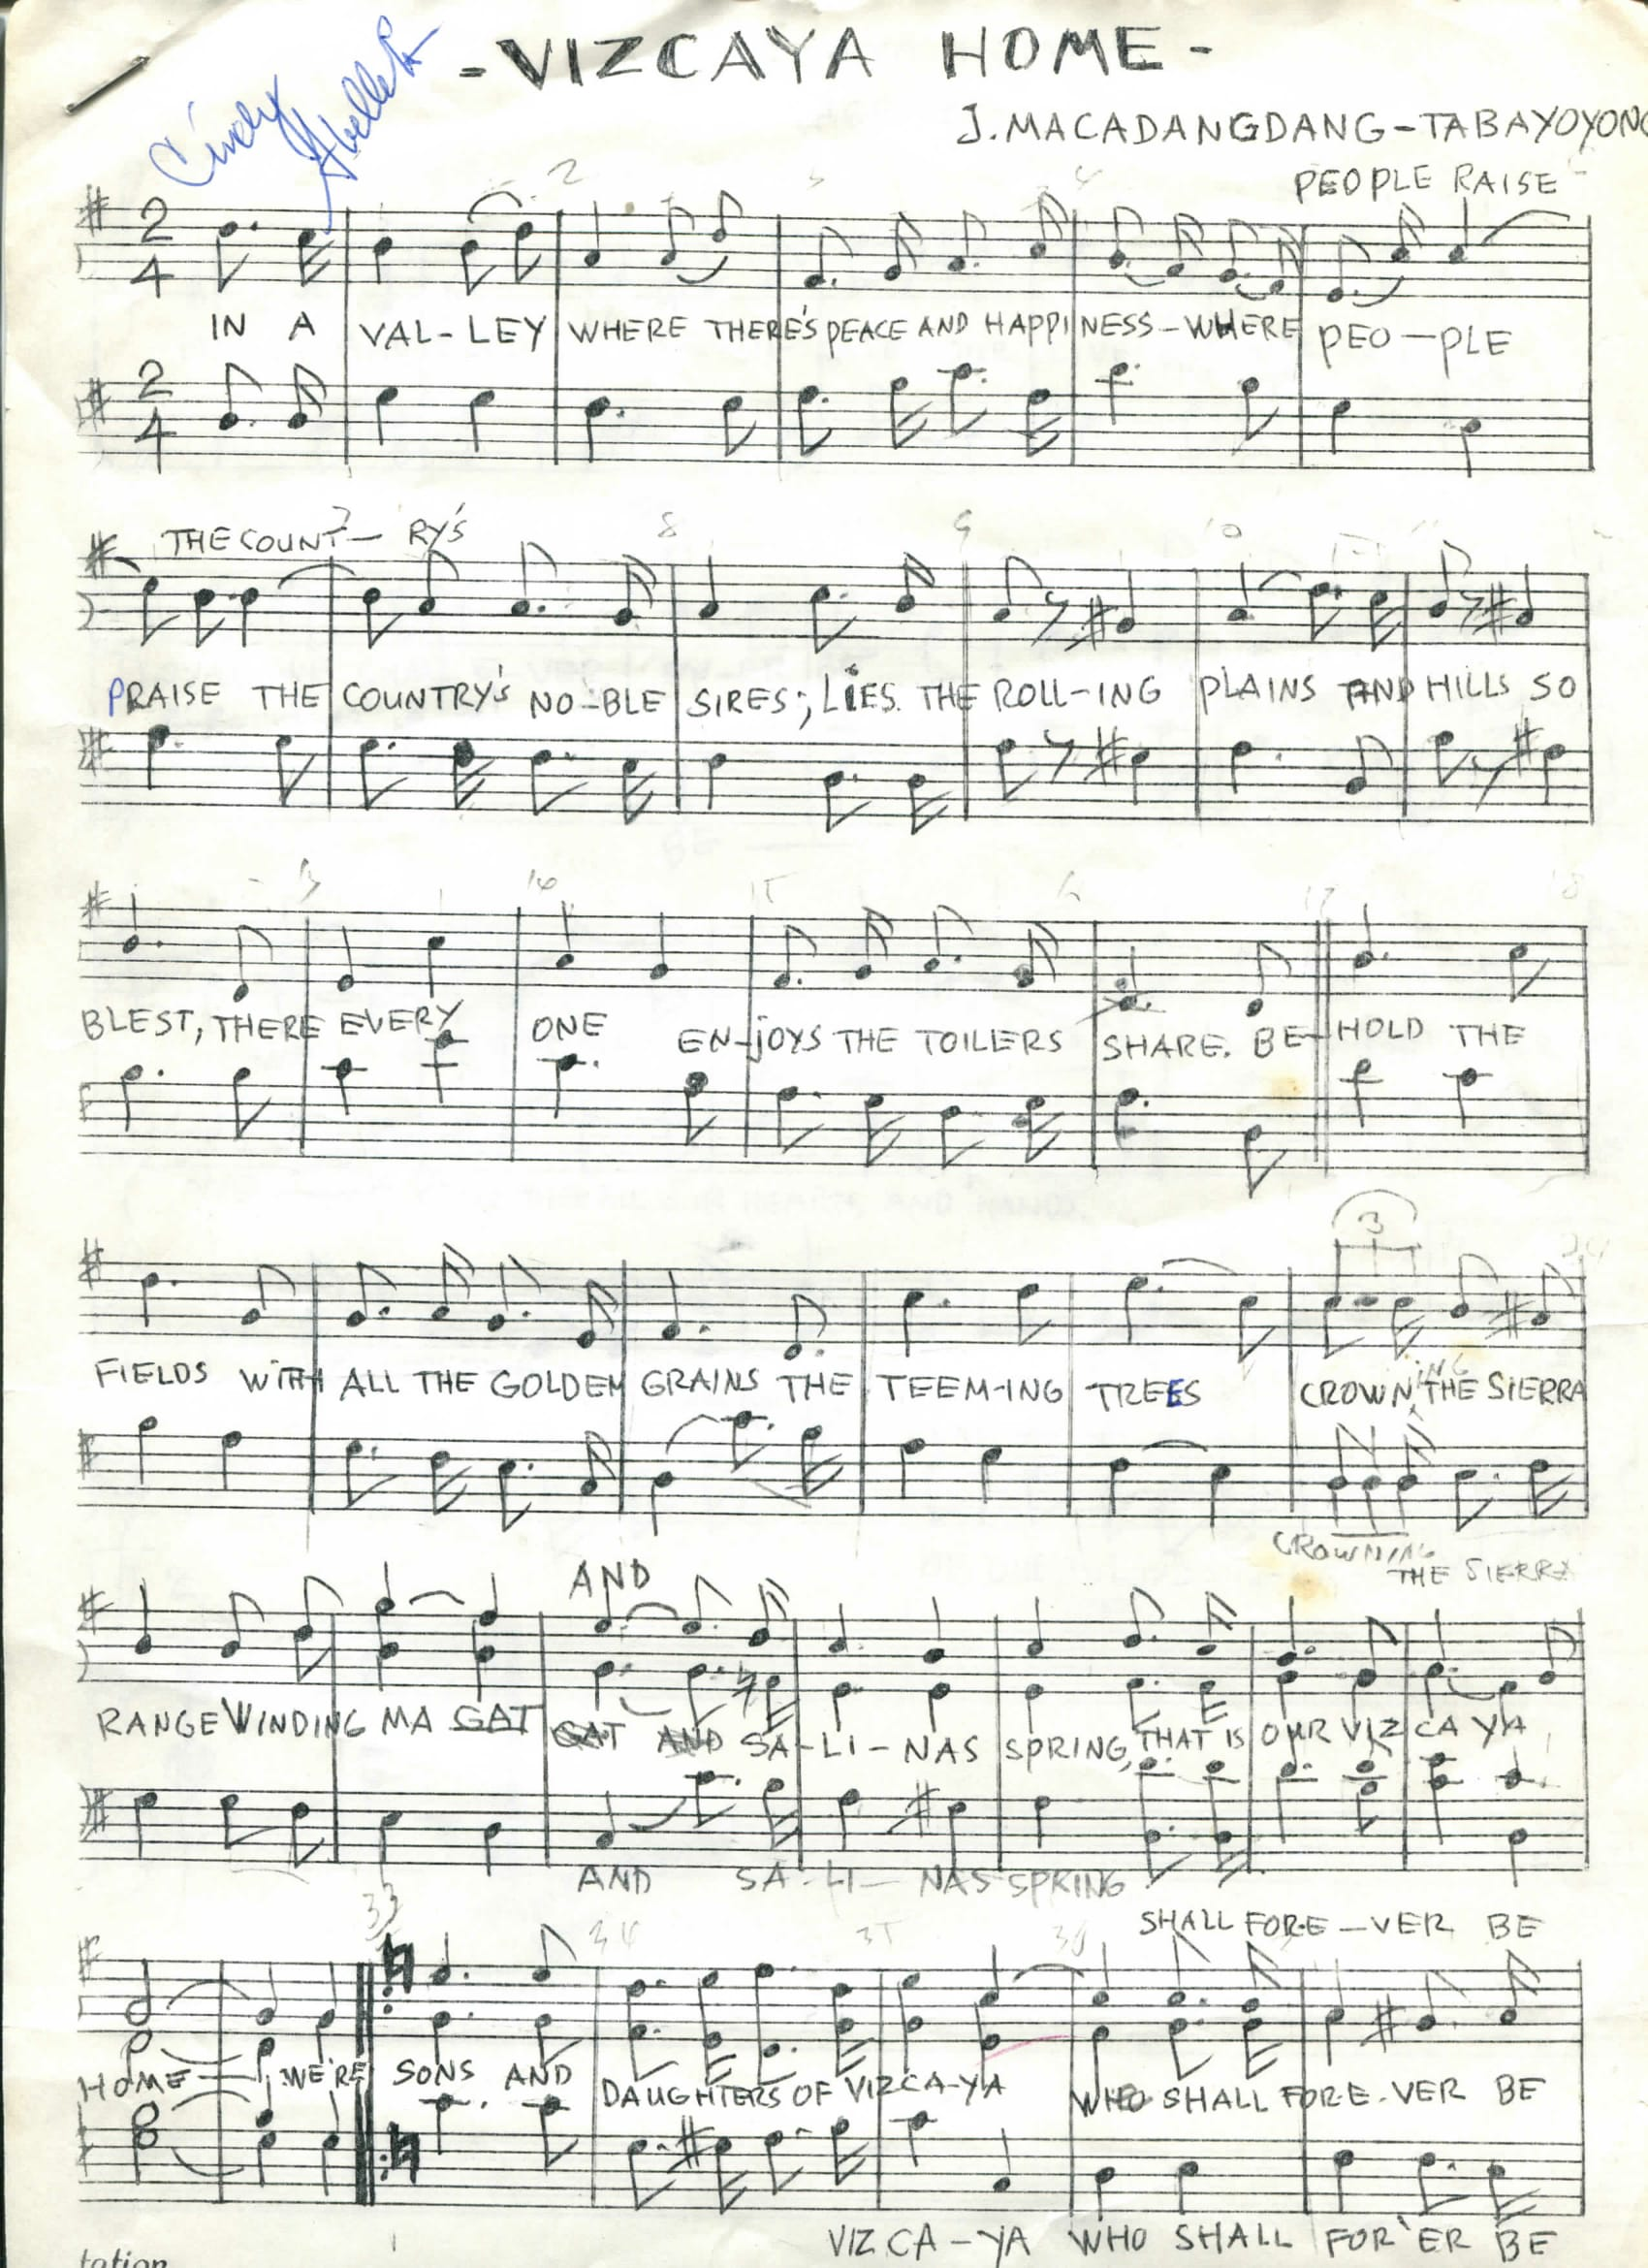 Scanned document owned by Kristen Surla. Sheet music. Acquired around 2000 from her late grandmother's belongings. Made in Bayombong, Nueva Vizcaya. Lyrics in English. Surla felt that this was significant because her grandmother was a part of a Filipino American organization for Bayombong, Nueva Vizcaya. This song was sung as the welcome anthem at the organization's events. It is specific to their village.   Any views, findings, conclusions, or recommendations expressed in this story do not necessarily represent those of the National Endowment for the Humanities. [Copyright] Field Museum of Natural History - CC BY-NC